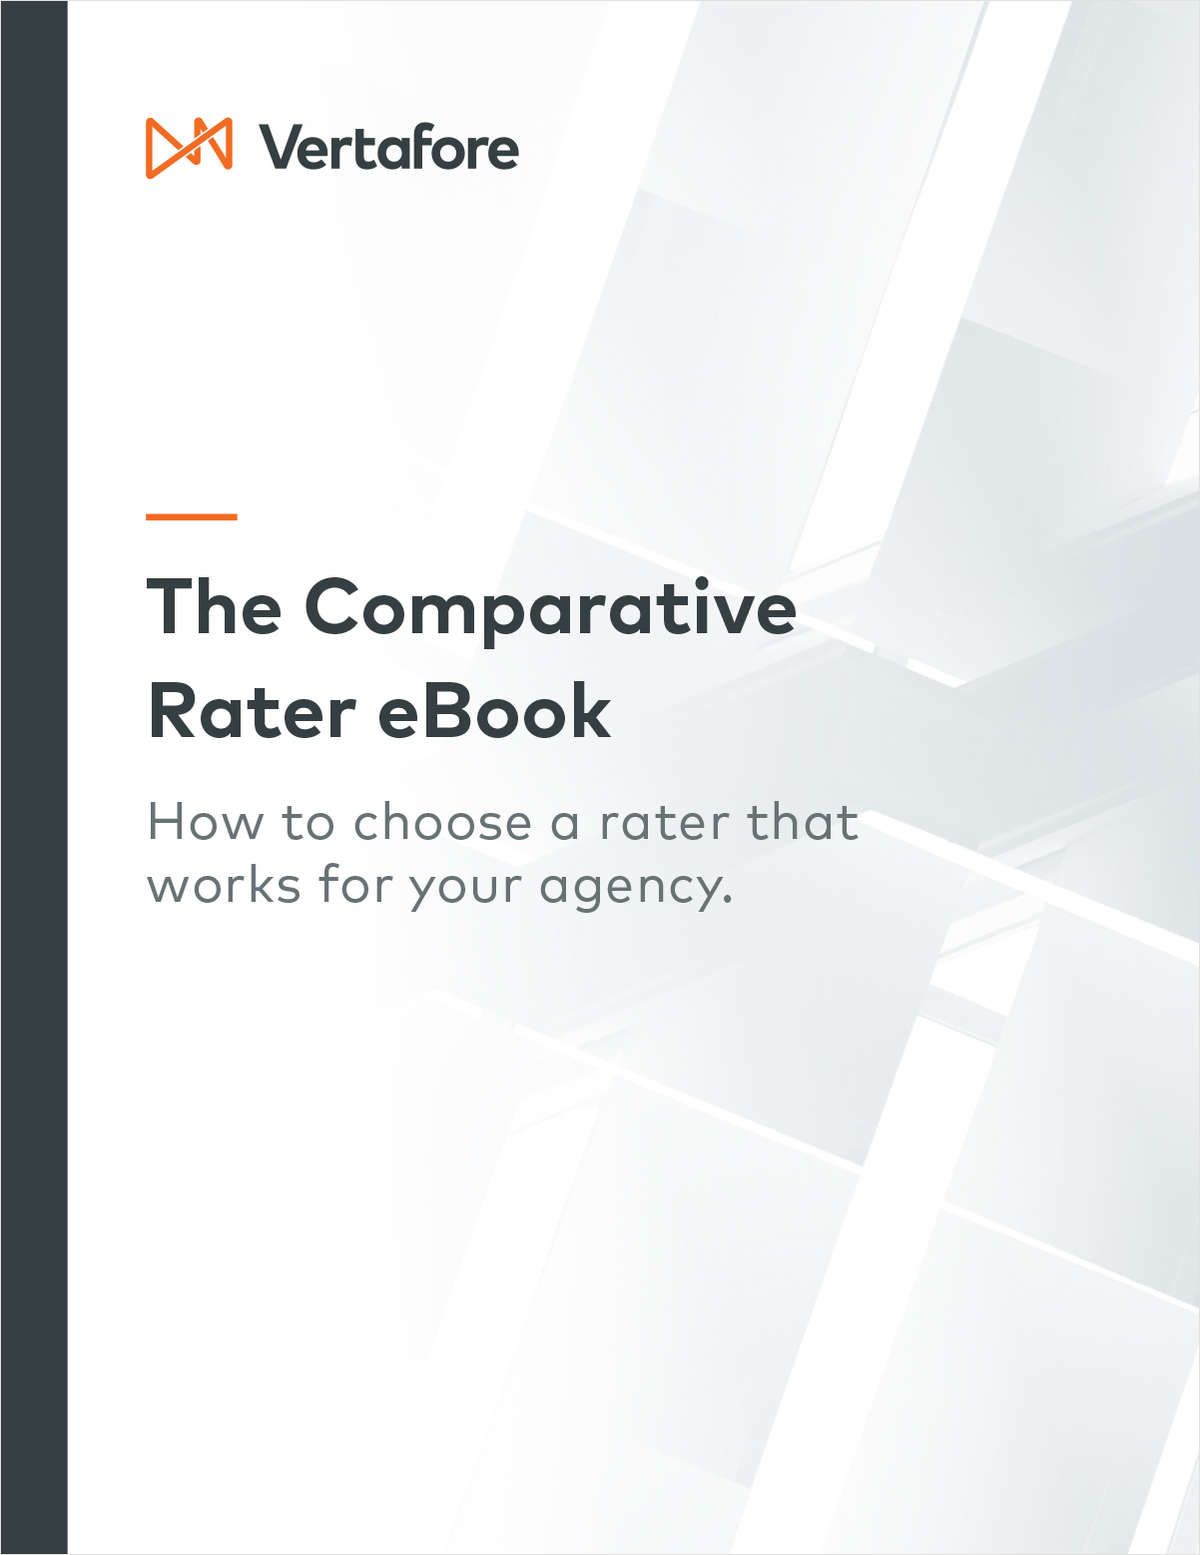 The Comparative Rater eBook: How to Choose a Rater that Works for Your Agency